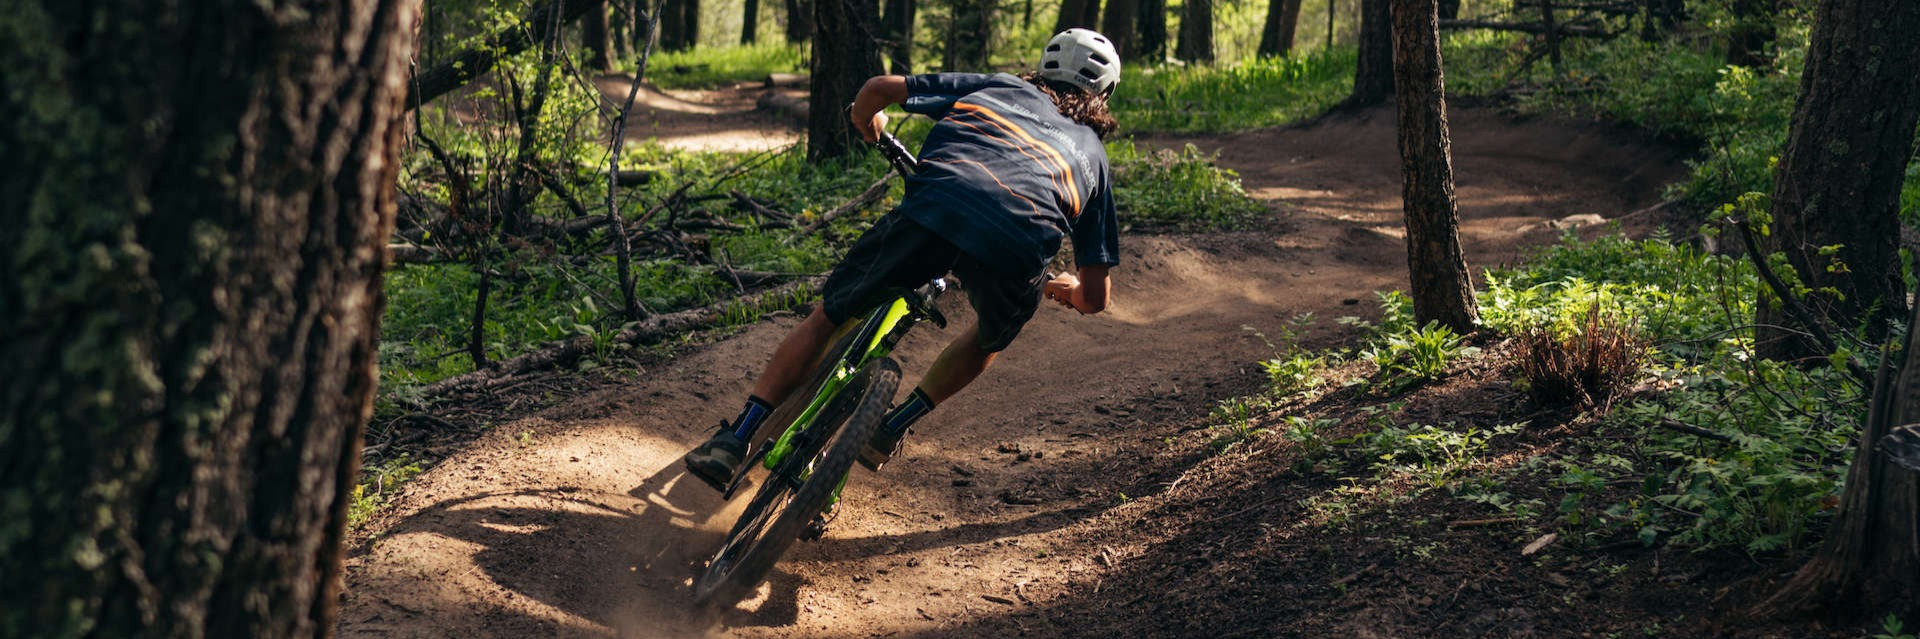 Man riding green mountain bike on a wooded trail